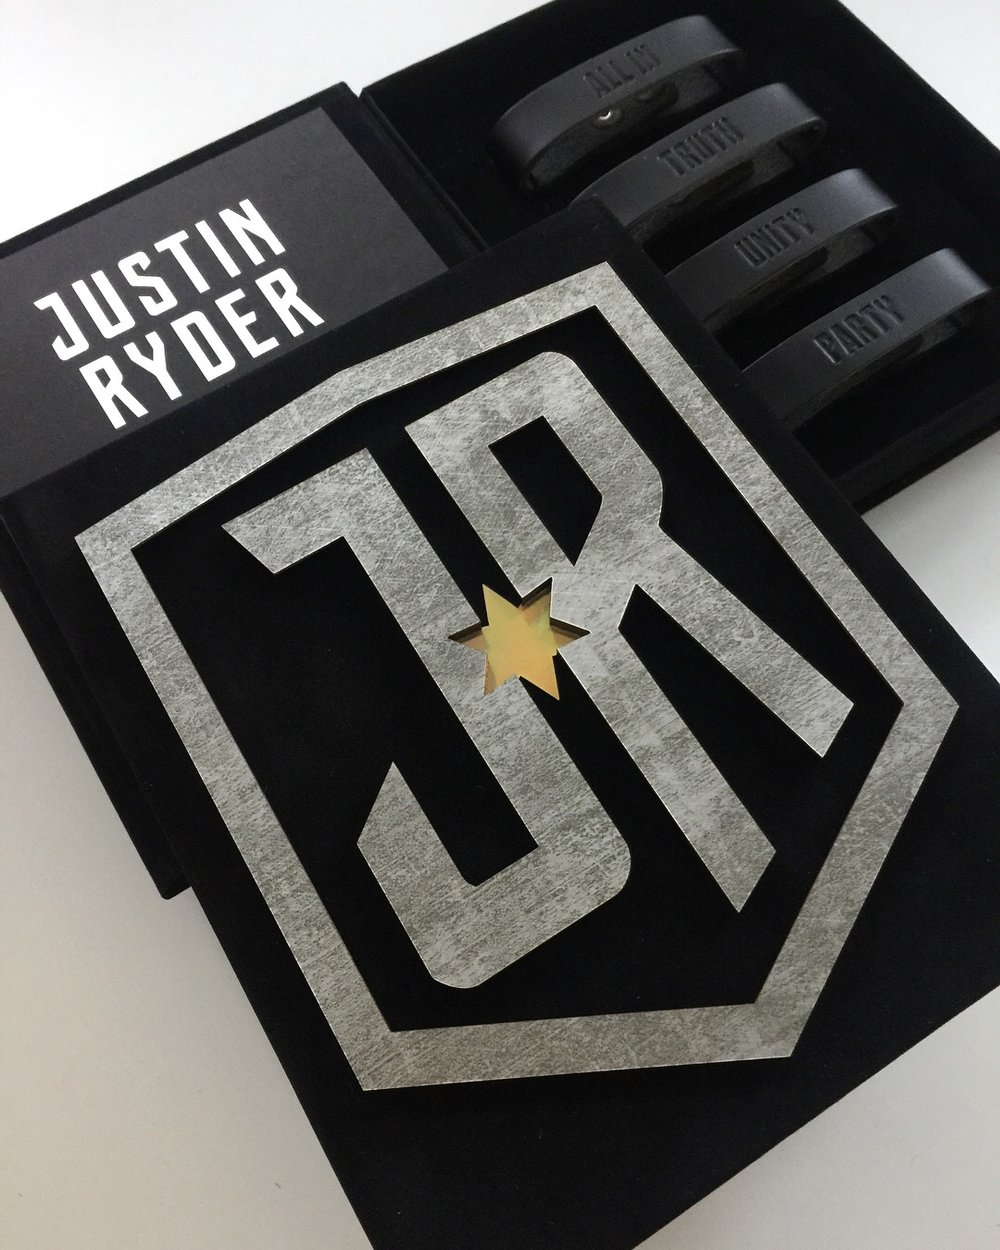 Justin Ryder  // When your client wants a Justice League-inspired invitation, you go ALL IN. Distressed Chroma shield with holographic star mounted to the top of the black suede invitation box and four leather bands inside: ALL IN, TRUTH, UNITY, PARTY. We even made a life-size shield for the party!